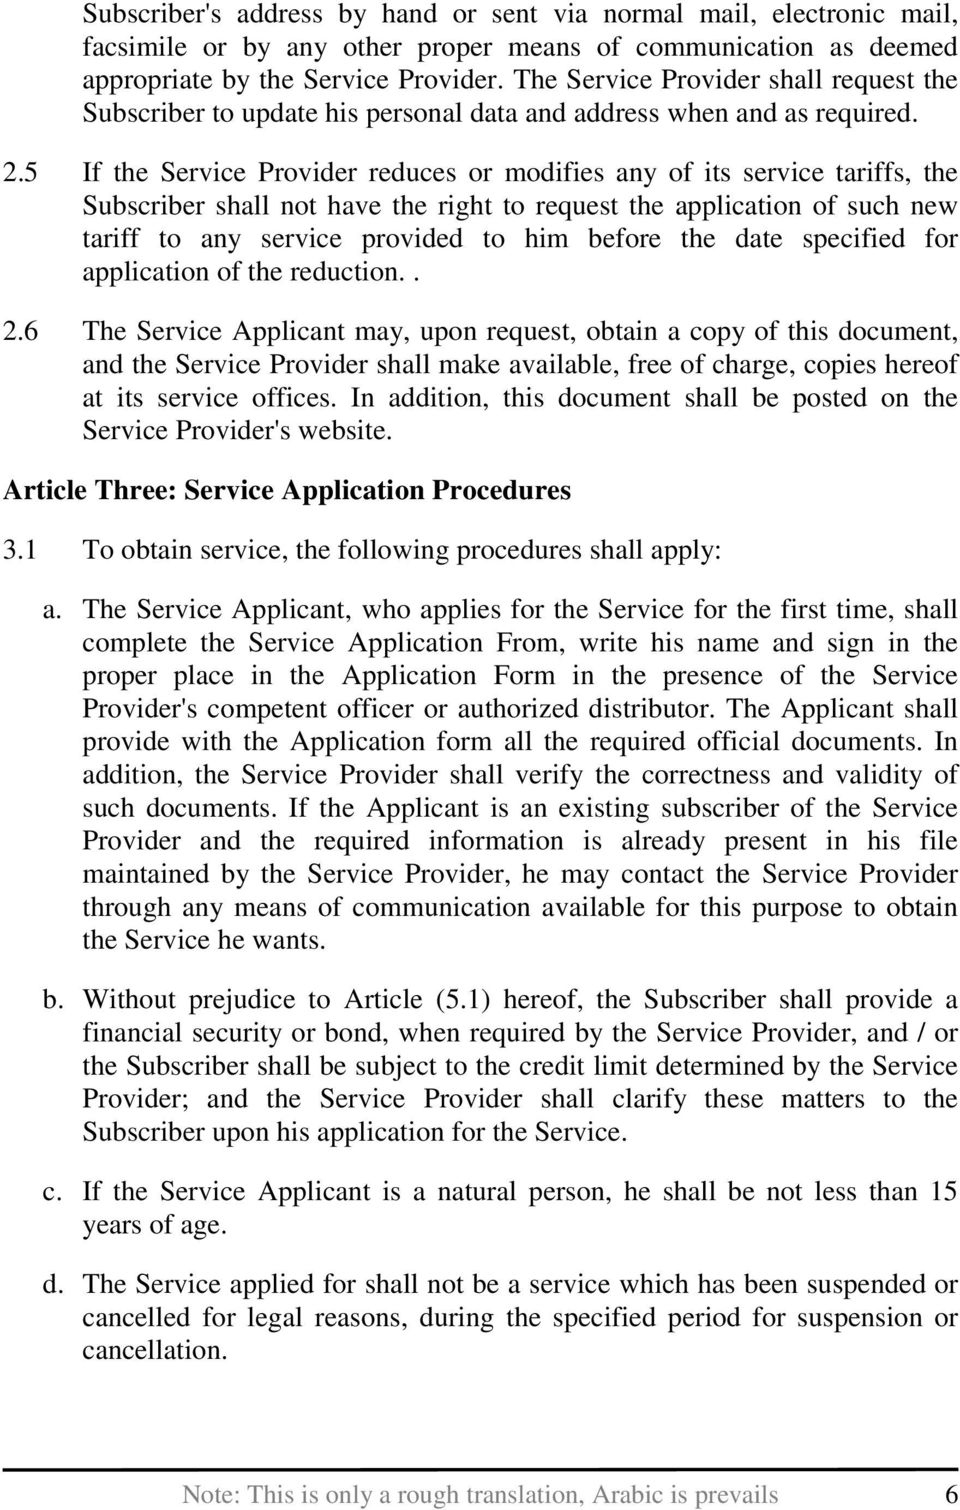 5 If the Service Provider reduces or modifies any of its service tariffs, the Subscriber shall not have the right to request the application of such new tariff to any service provided to him before